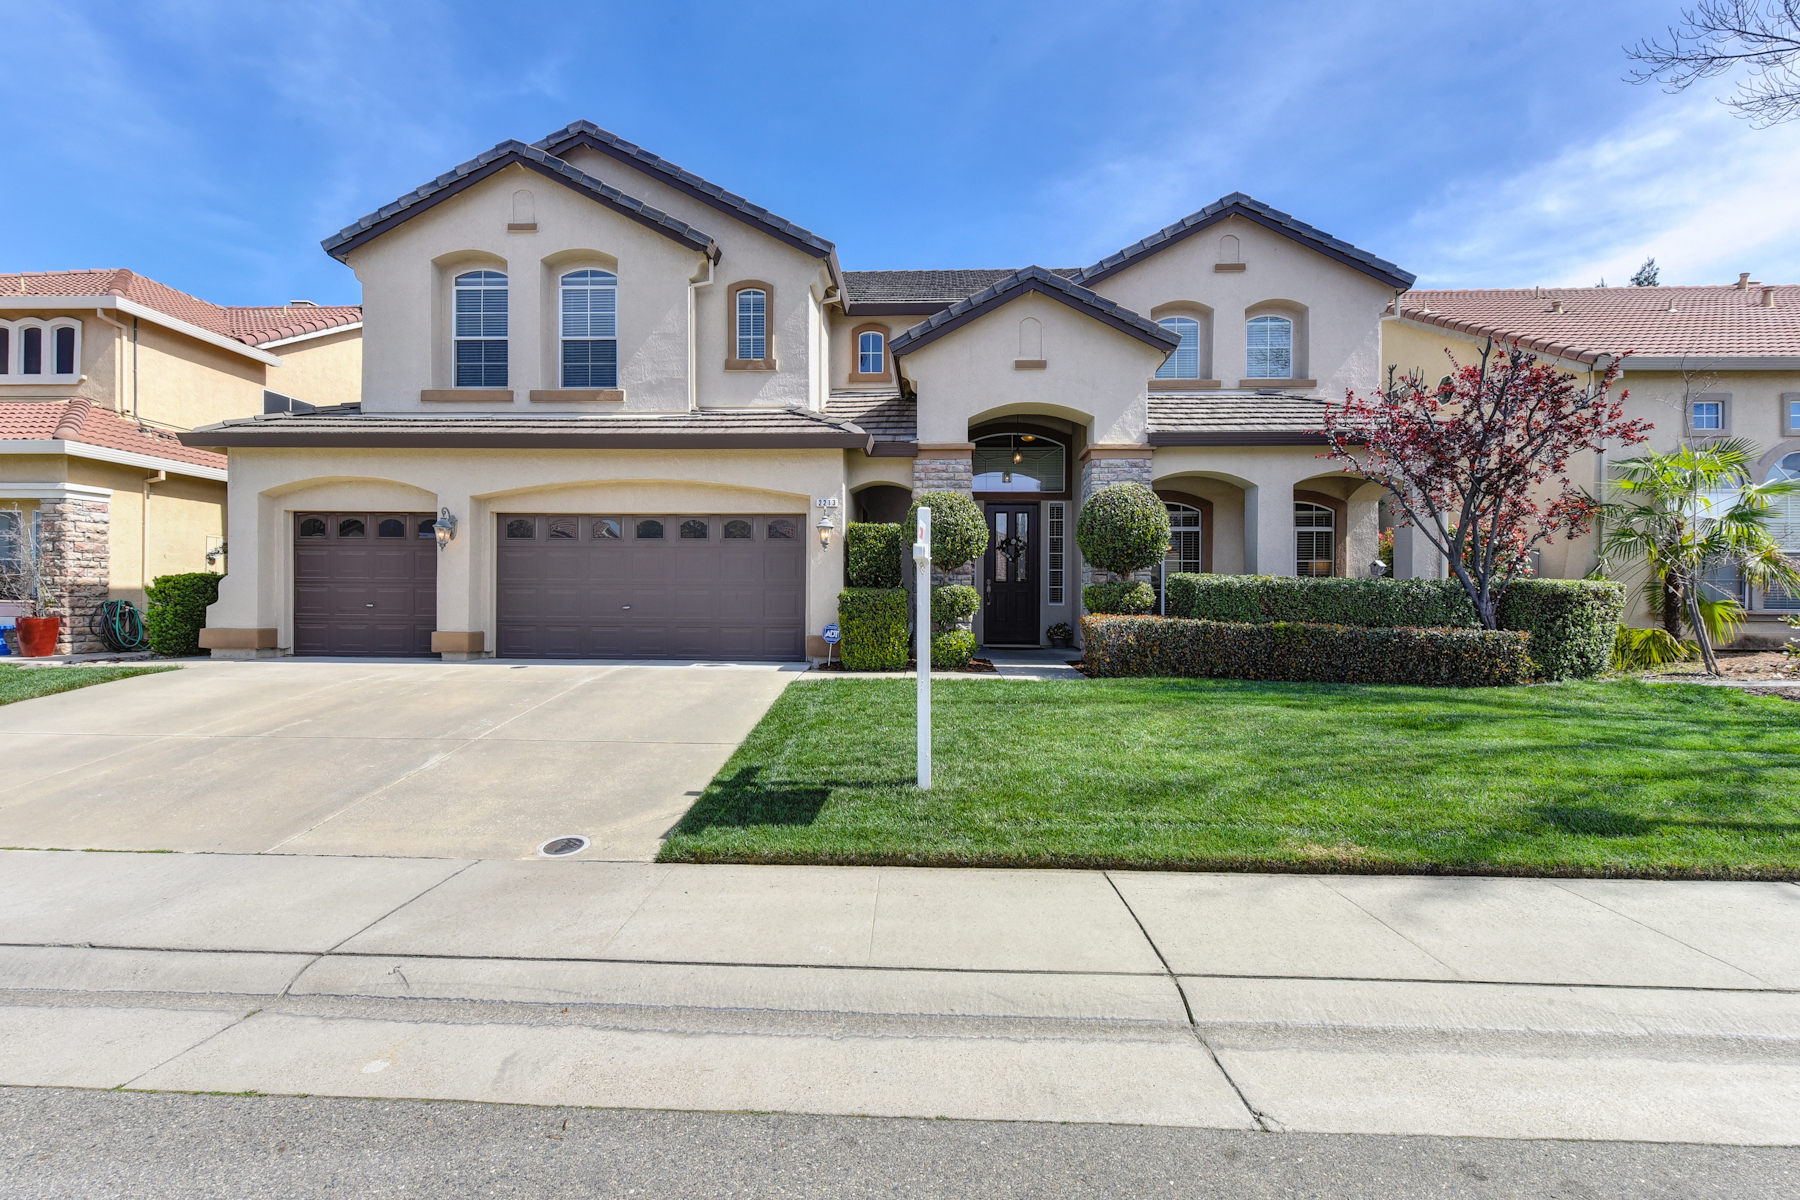 Single Family Home for Sale at 2213 Solitude Way, Rocklin, CA 95765 2213 Solitude Way Rocklin, California 95765 United States